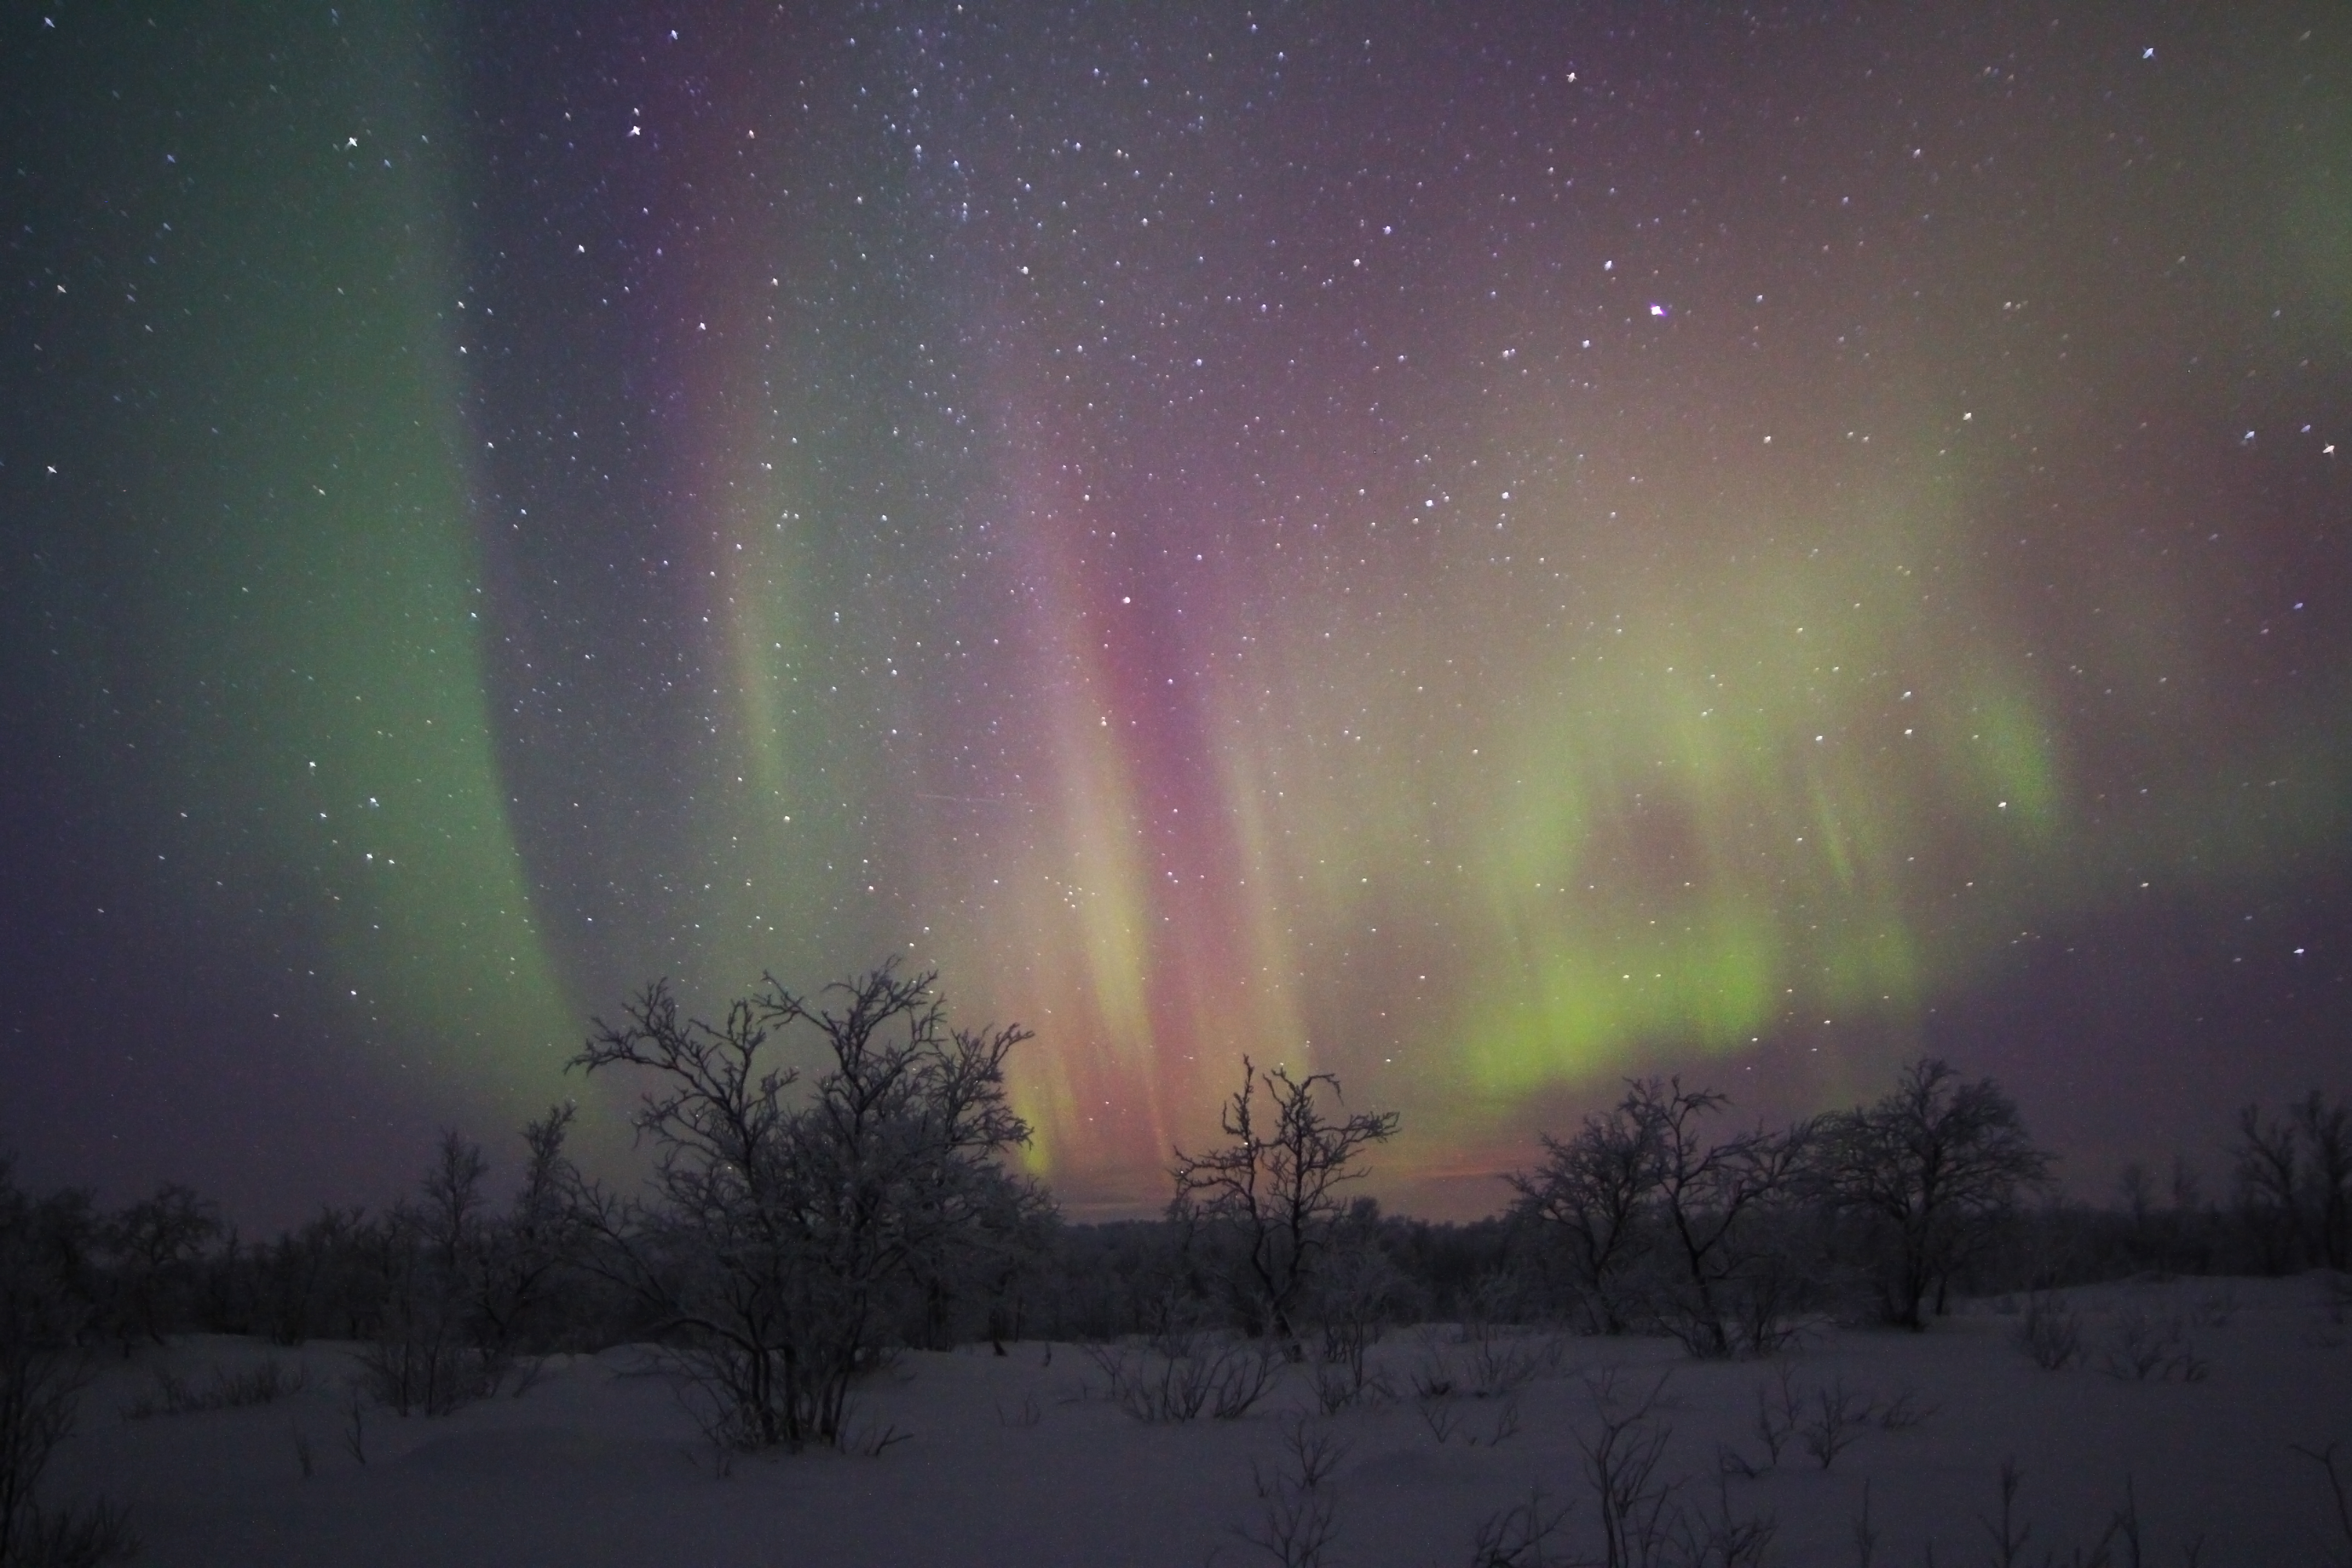 Every year the Aurora looks different. This was from 2012.